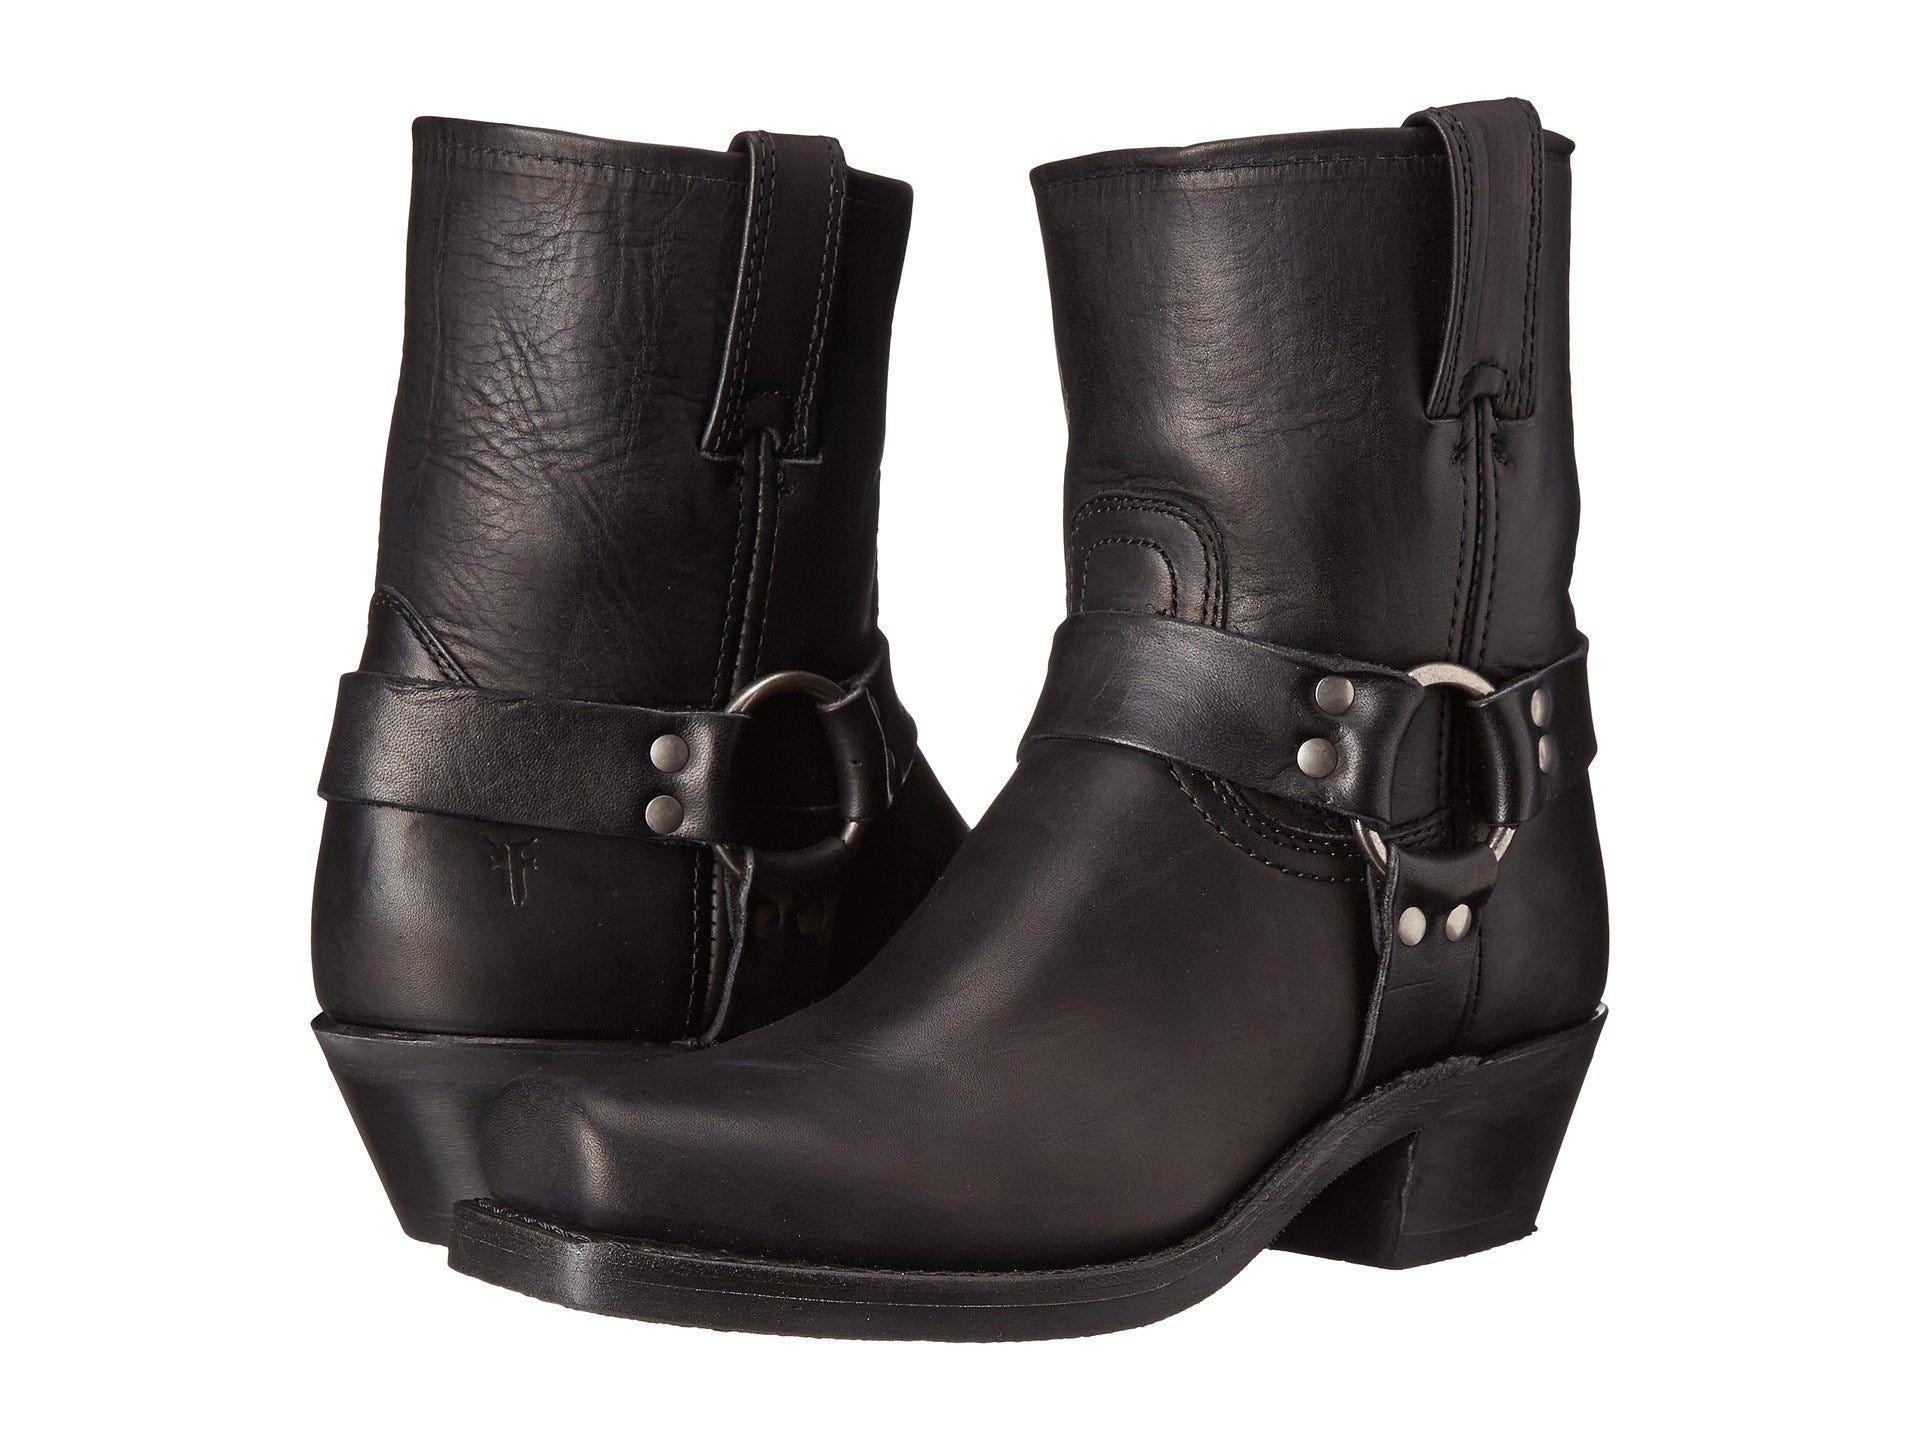 27b1cb9d73ddc Most Comfortable Boots For Women On Zappos 2018